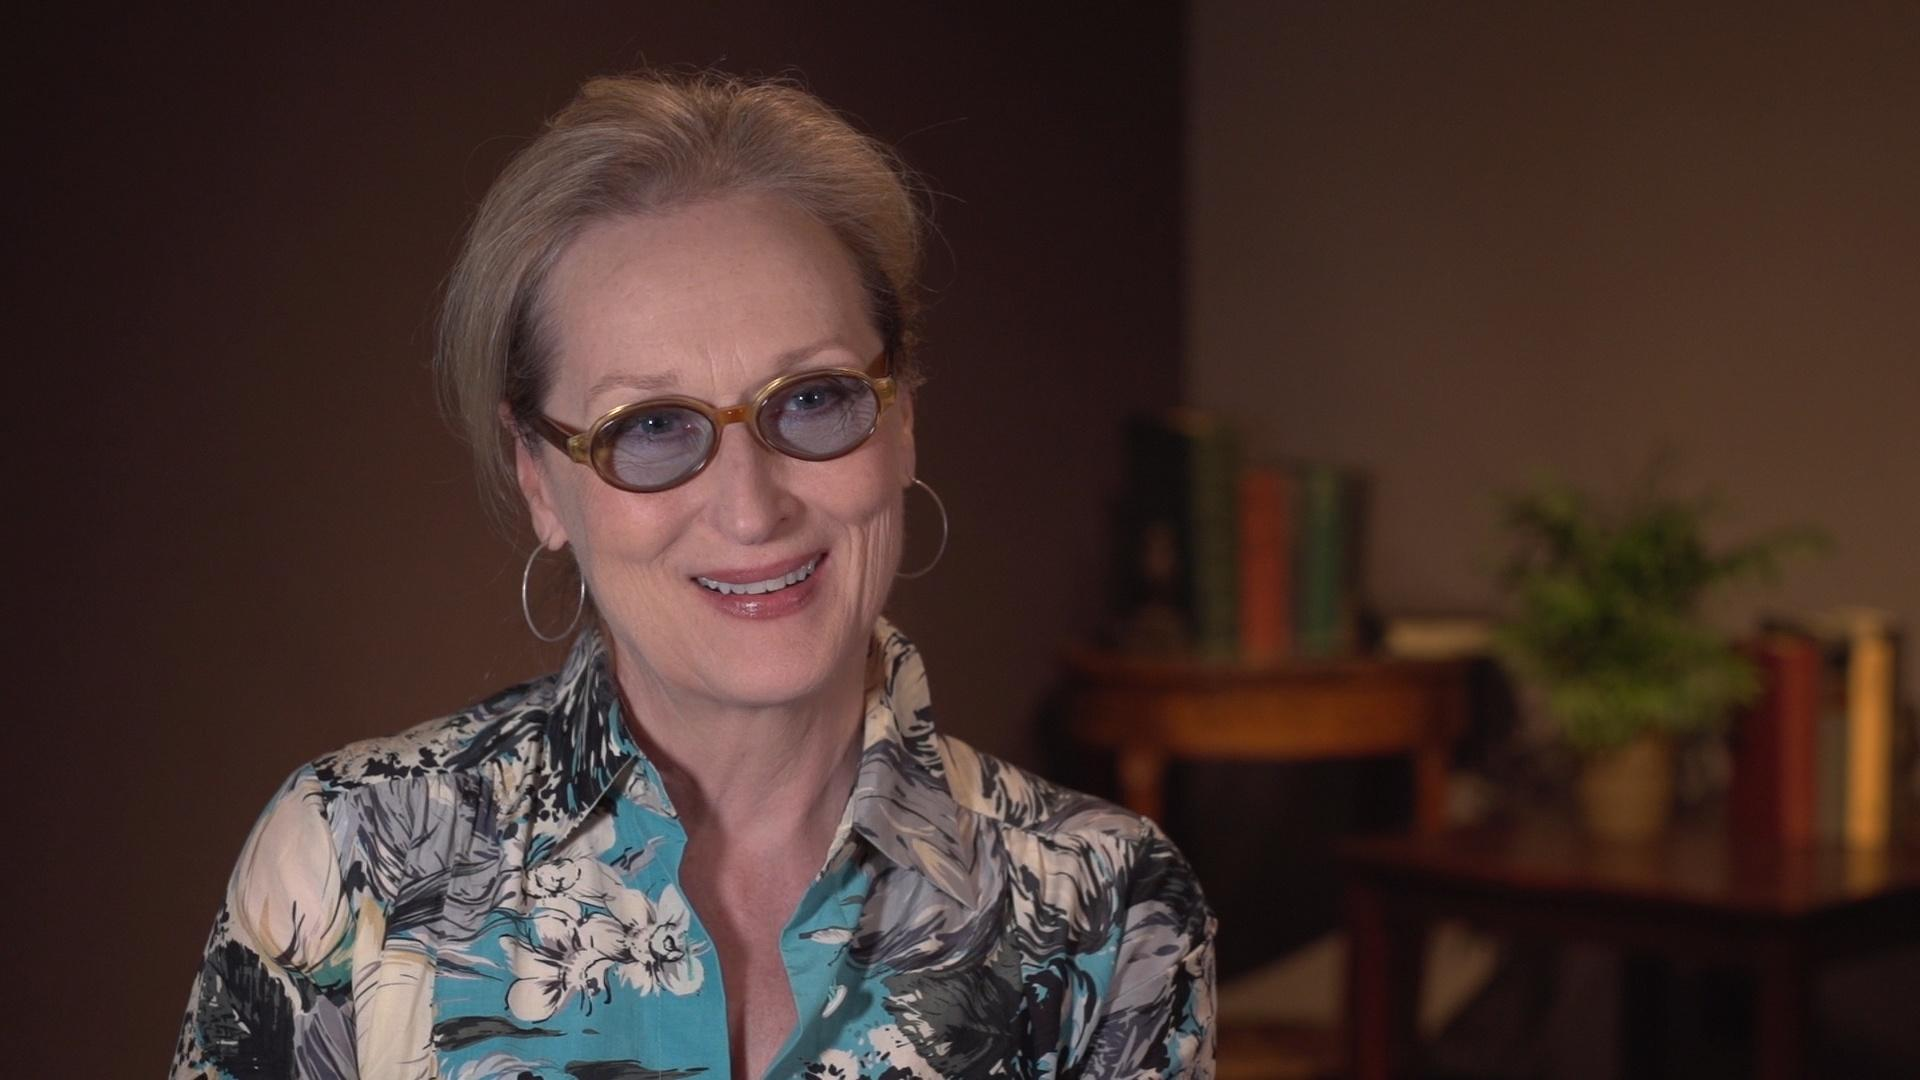 Meryl Streep Interview: Working with Director Mike Nichols